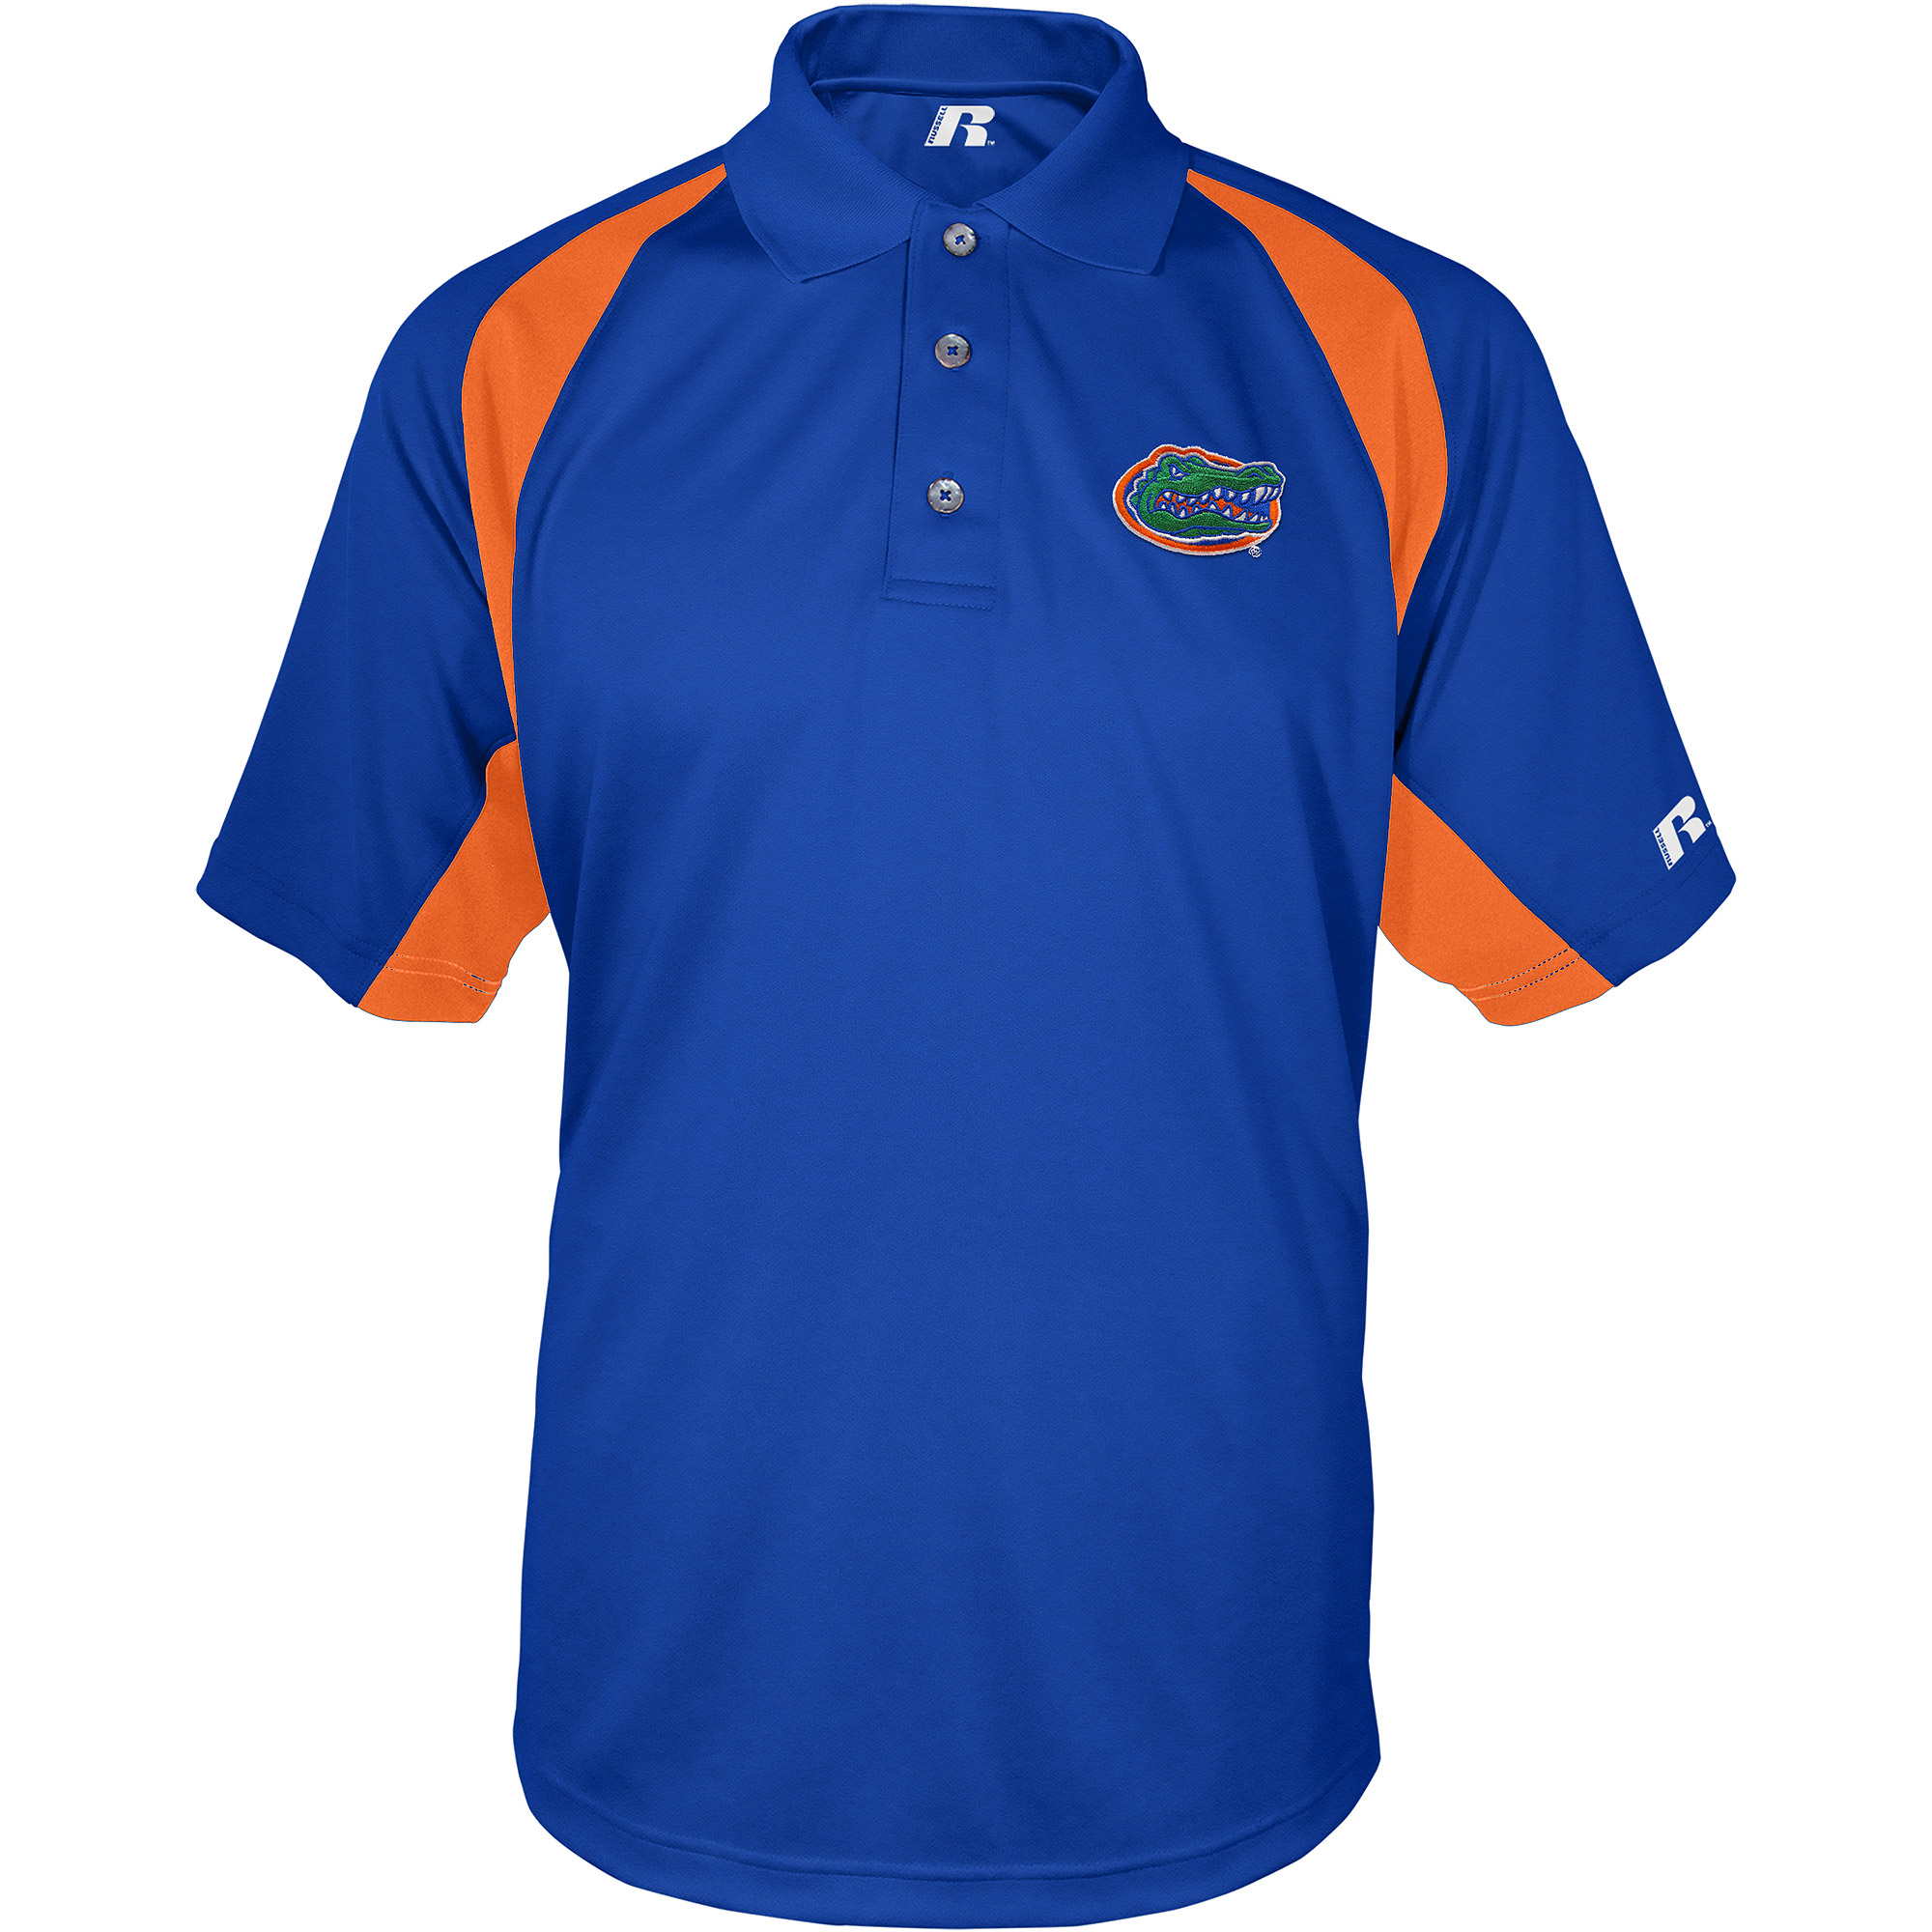 Russell NCAA Florida Gators, Men's Synthetic Polo